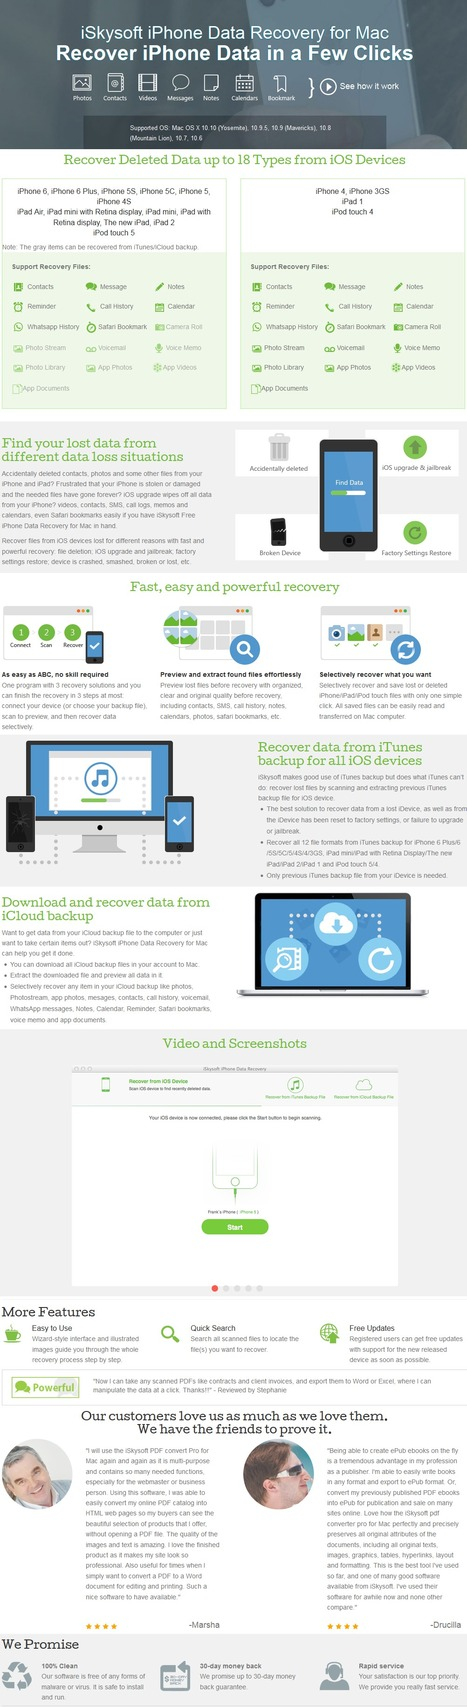 50% Off - iSkysoft iPhone Data Recovery for Mac with Discount Coupon code   Data Recovery Software Coupon Codes   Scoop.it